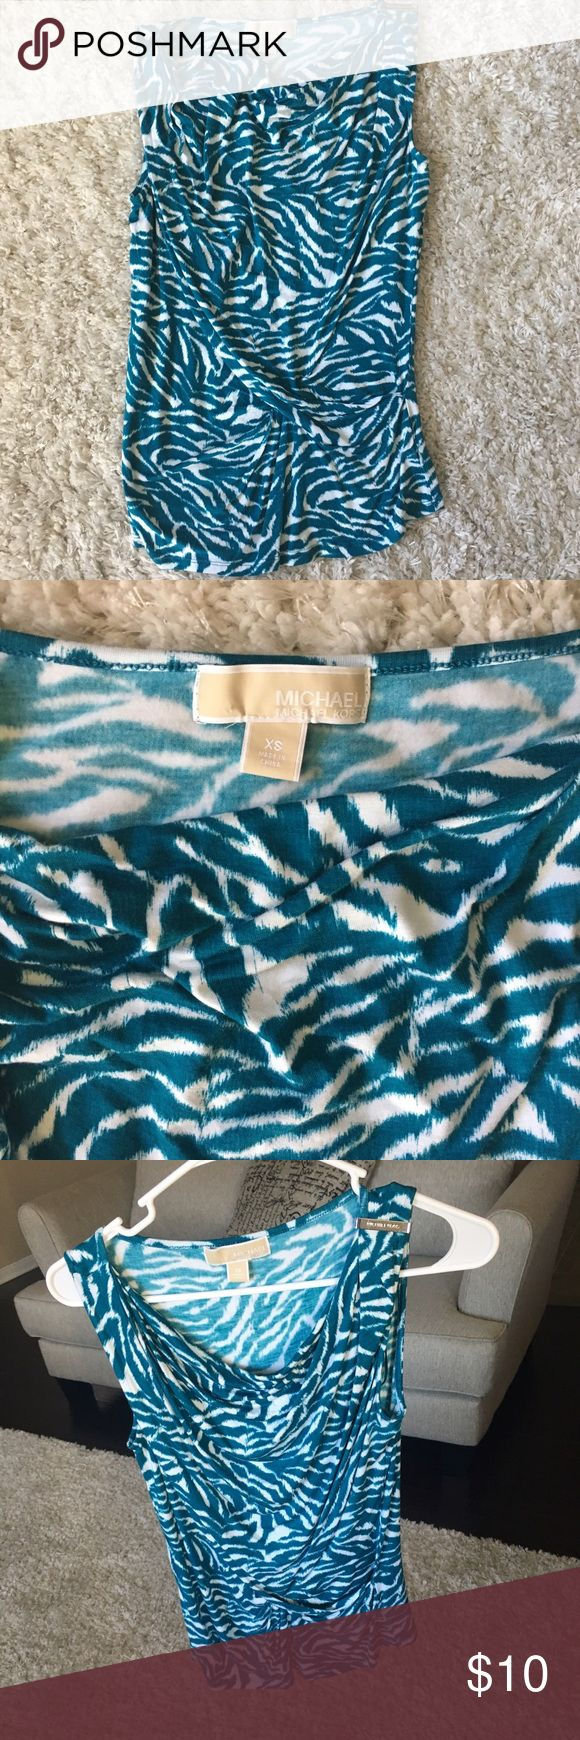 Michael Kors teal and white blouse in XS. Michael Kors teal and white zebra print blouse in XS. Michael Kors Tops